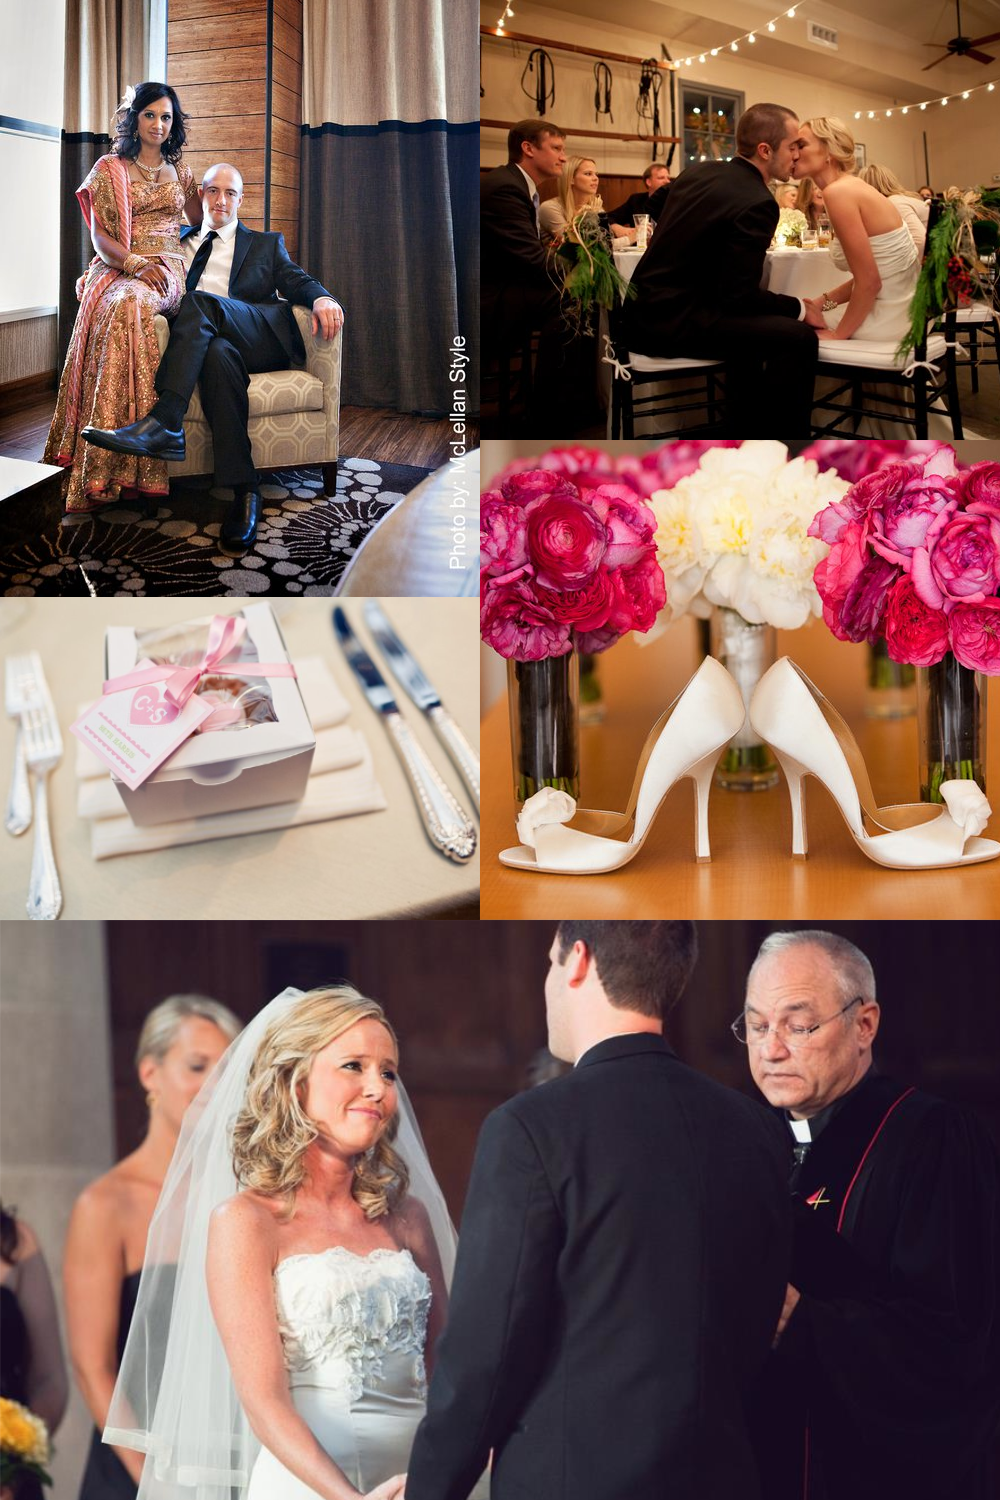 Some of my favorite weddings by A Delightful Day!